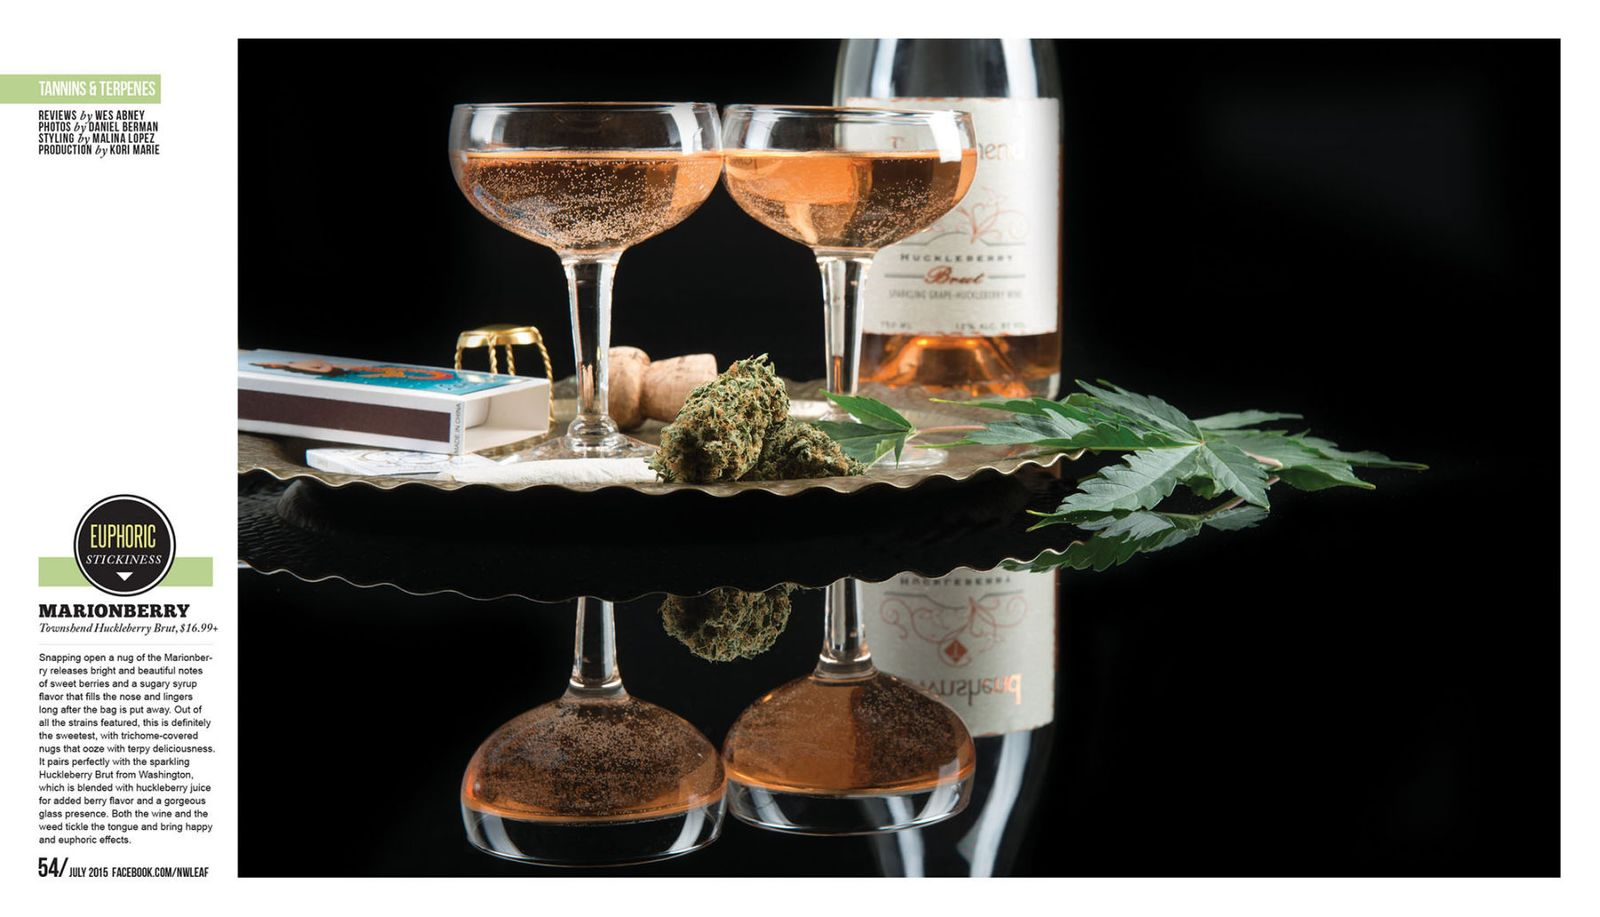 1tearsheets_winephotographer_productphotography_stilllife1_seattleeditorialphotographer